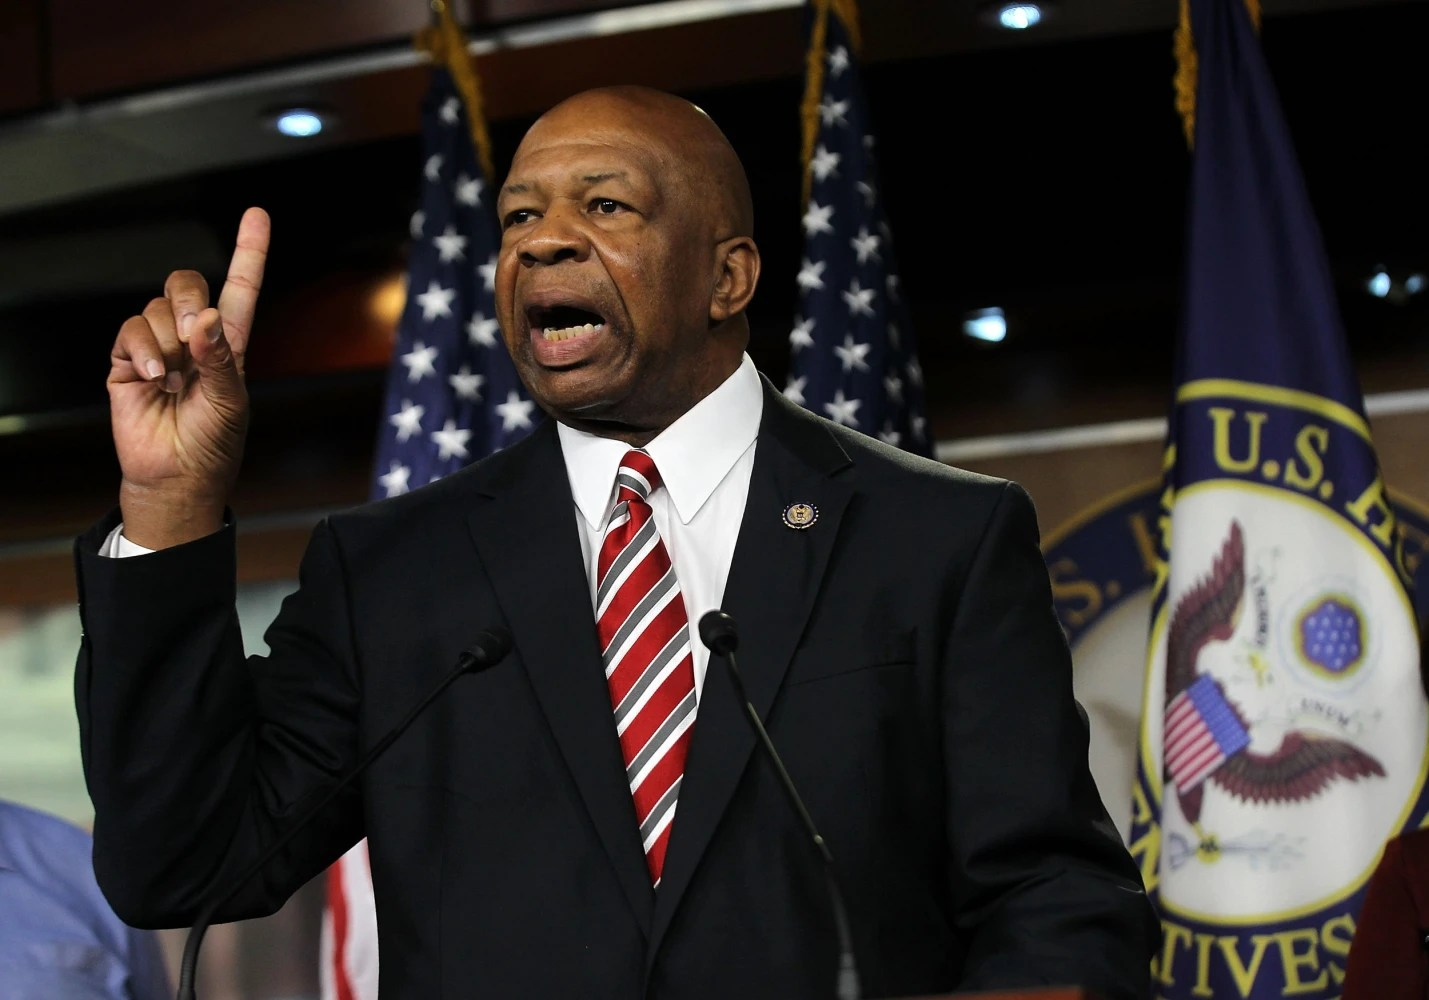 Image Rep. Elijah Cummings speaks during a news conference July 20